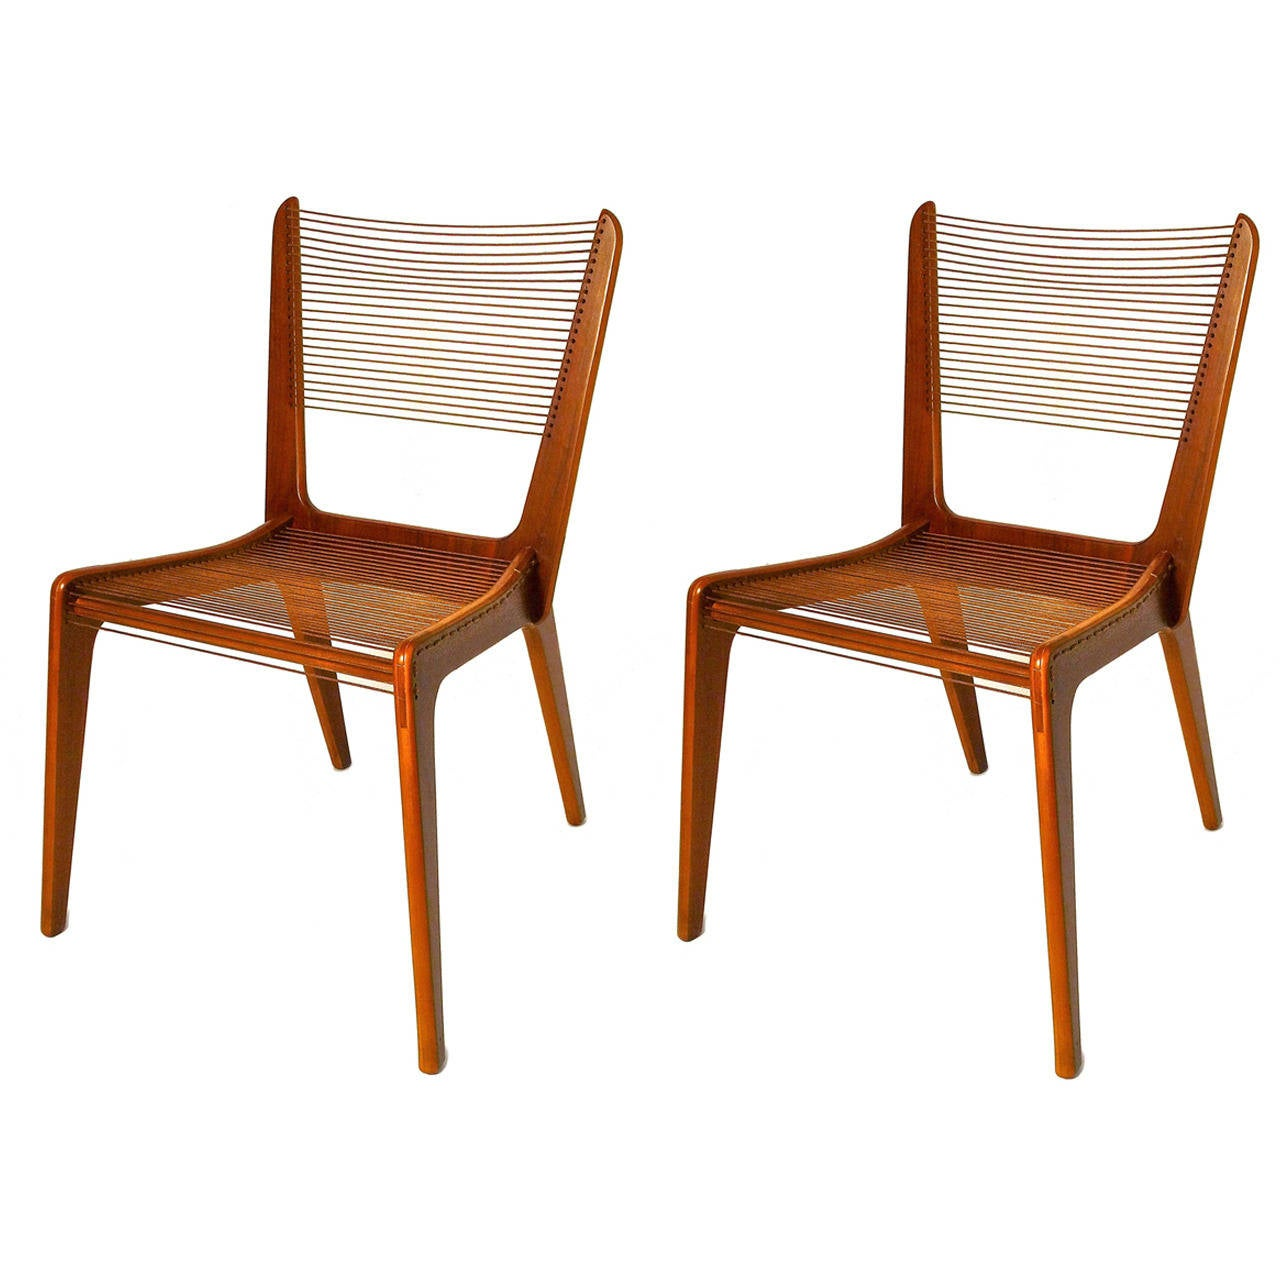 Charmant Pair Of Jacques Guillon Cord Chairs, Canada, 1950s For Sale